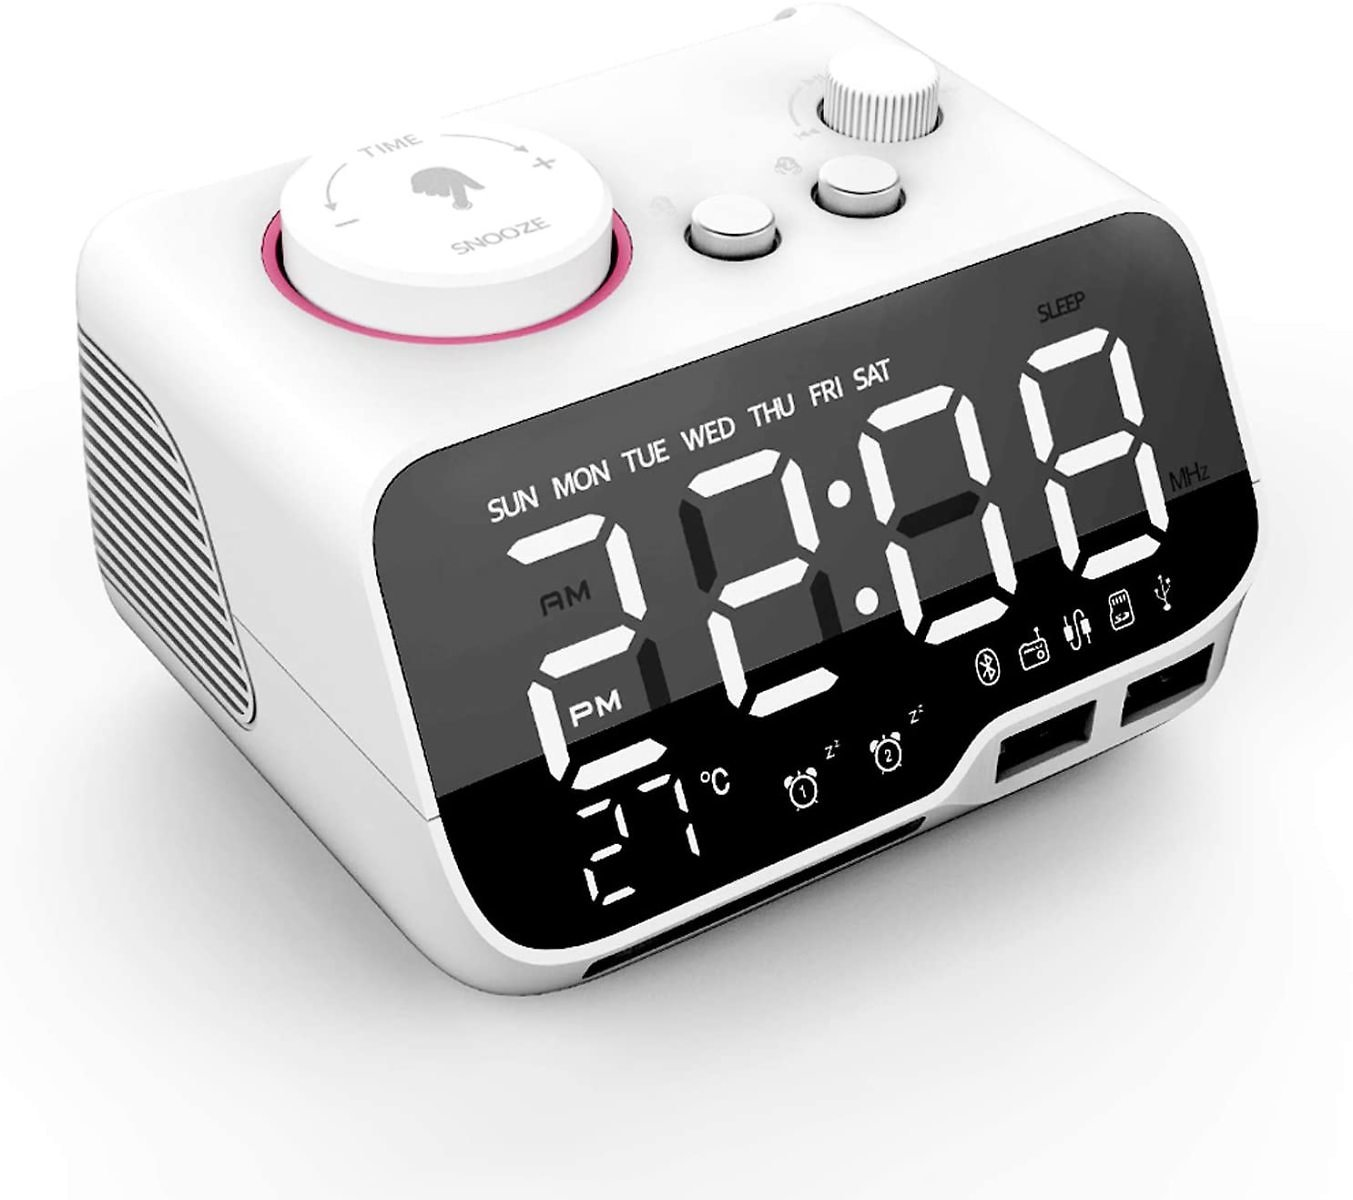 Alarm Clock Radio, Compact Radios, Alarm Clock with Bluetooth, Speaker, Thermometer, FM Radio, 2 USB Charging Ports, Snooze, Adj